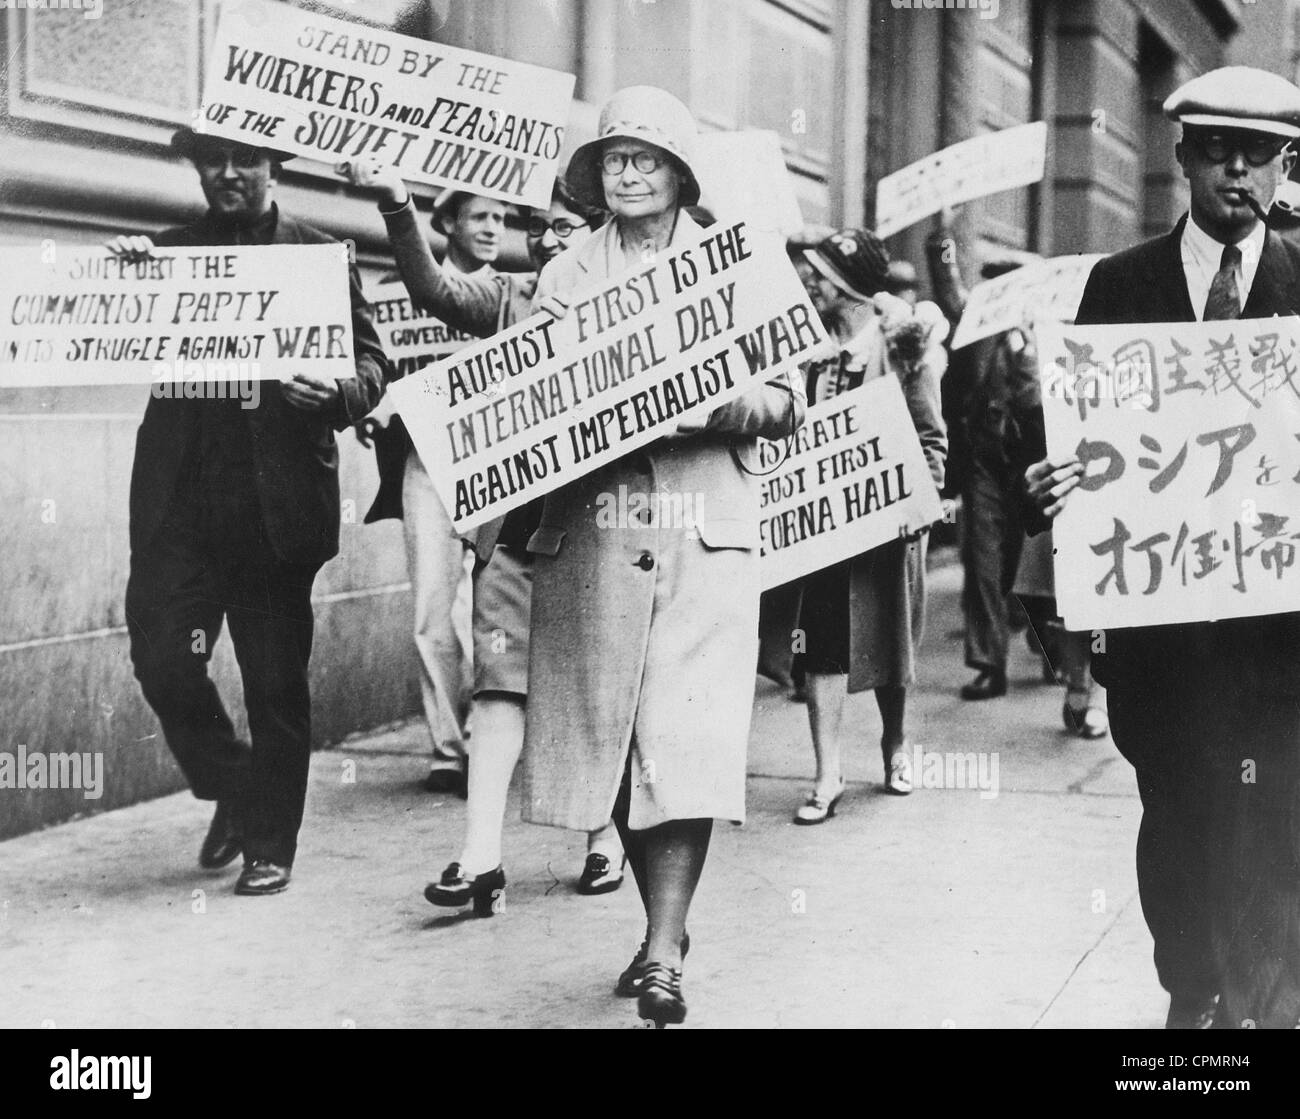 Demonstration against imperialism and war in San Francisco, 1929 - Stock Image